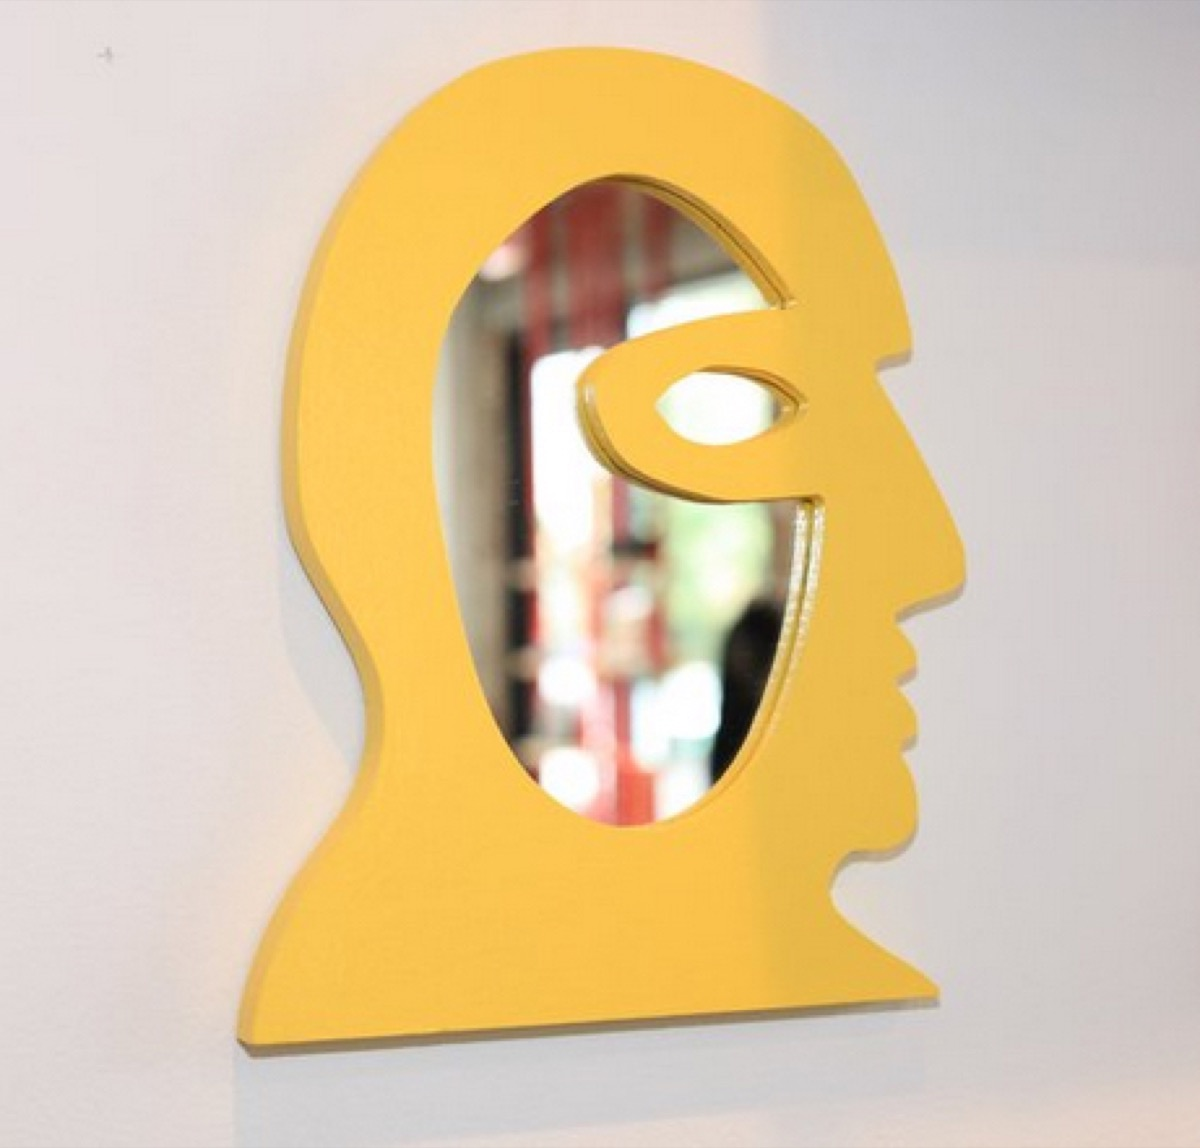 yellow mirror in the shape of a man's face